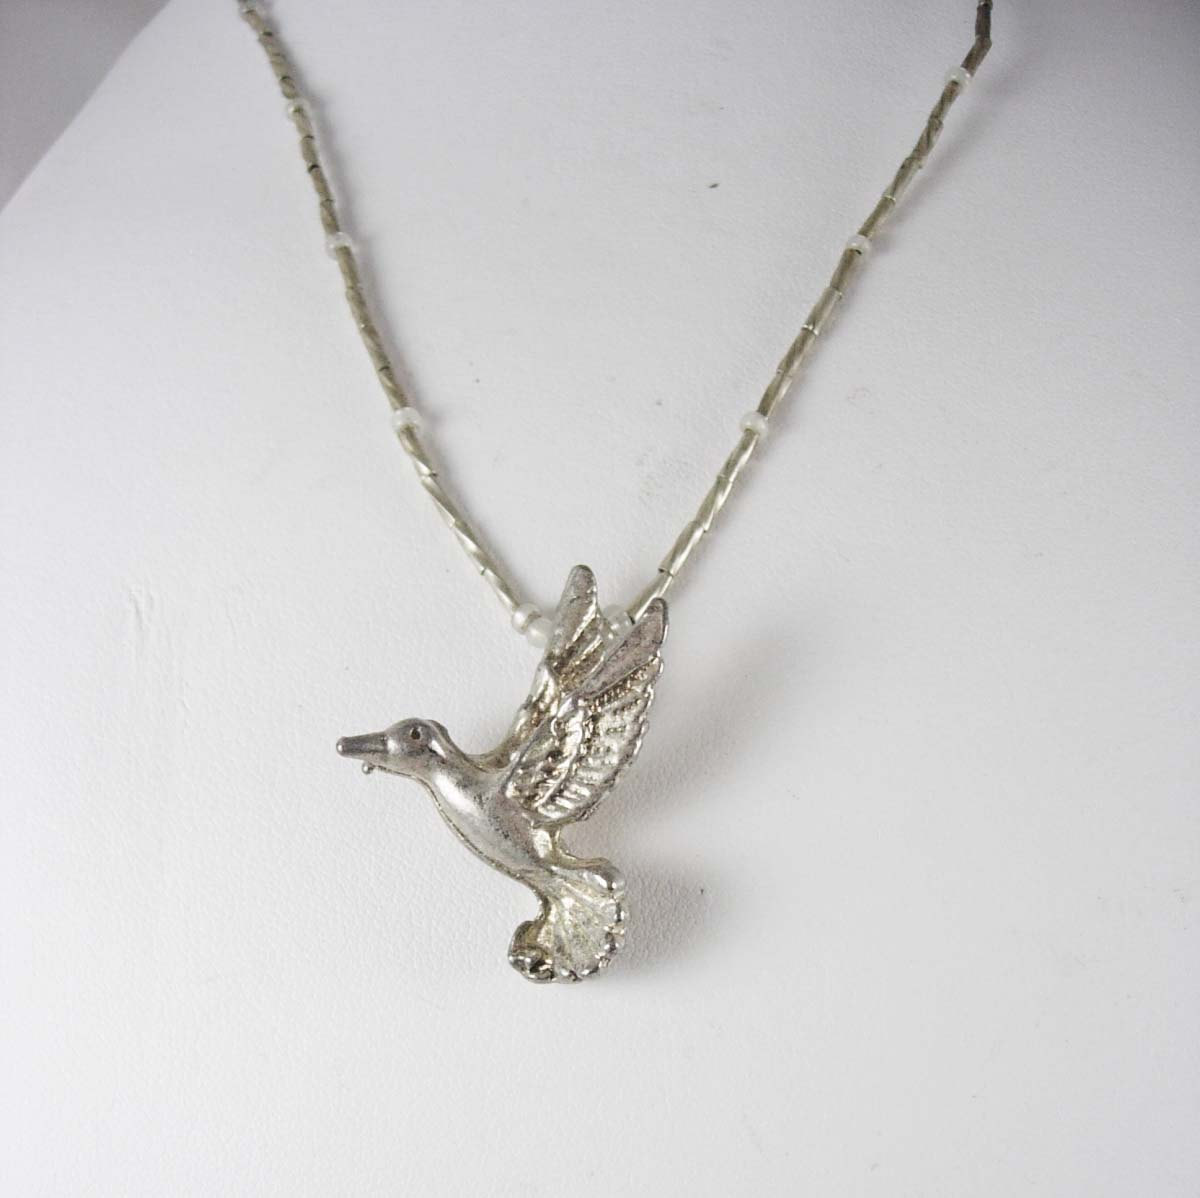 Primary image for Bird Duck Pendant Vintage Necklace Charm 16 inch Sterling silver Tube Chain and